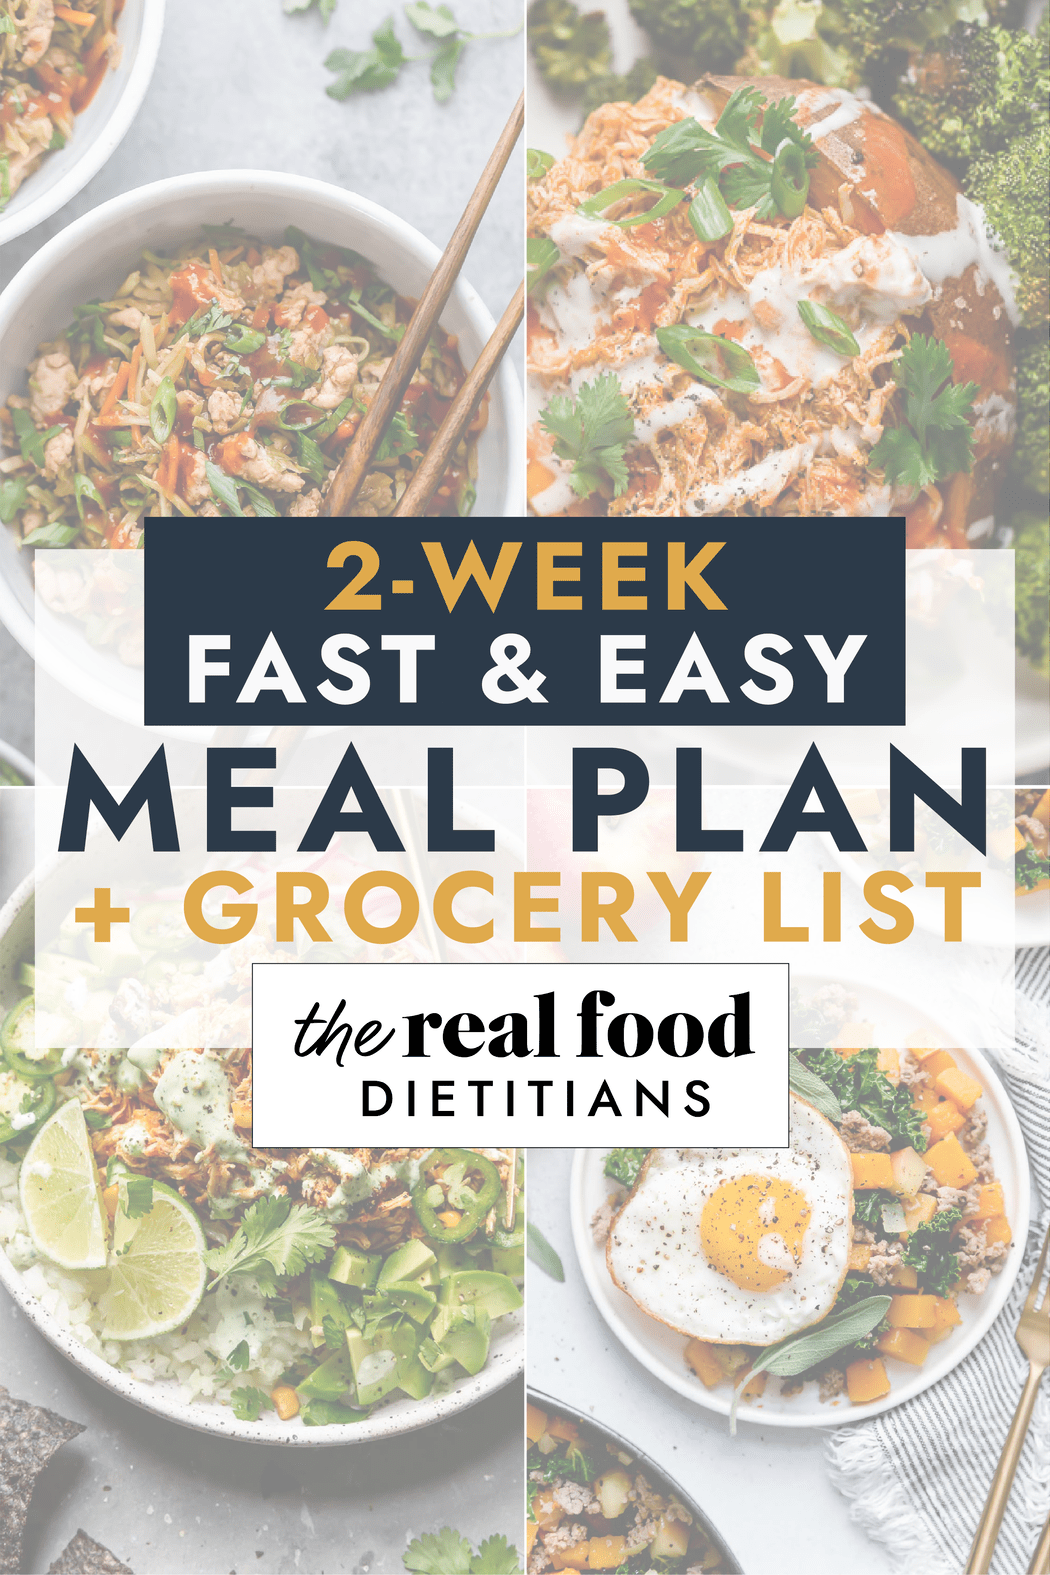 8 Week Fast and Easy Meal Plan with grocery list   The Real Food ...